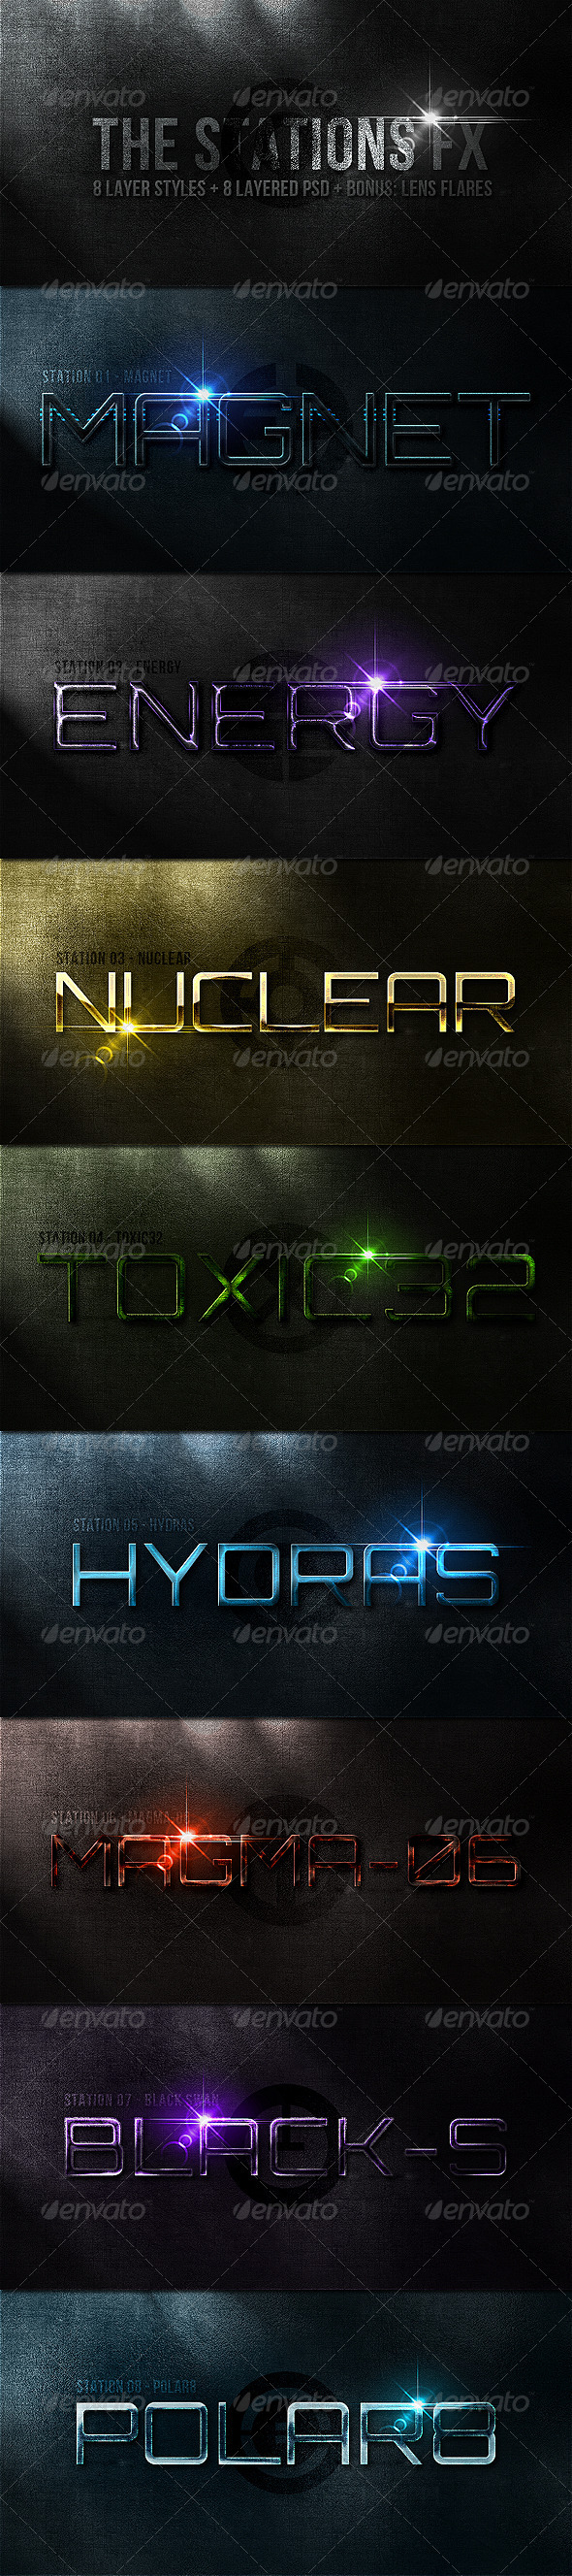 The Stations - Text Effects Styles